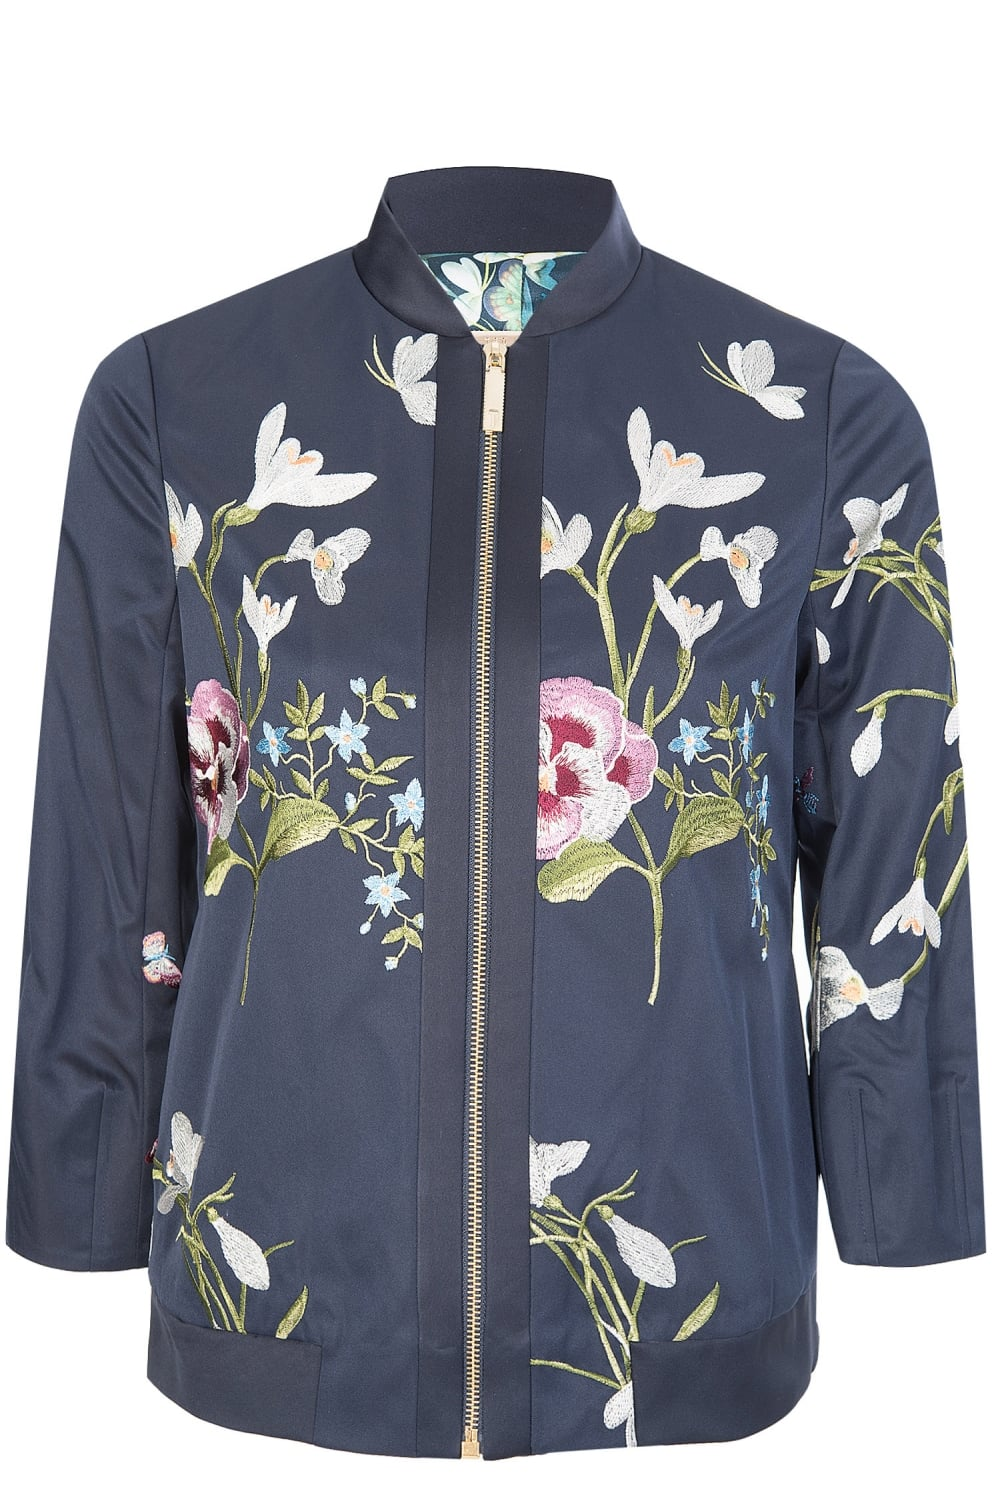 3e570de929971 Ted Baker Spring Meadow Embroidered Bomber Jacket Navy